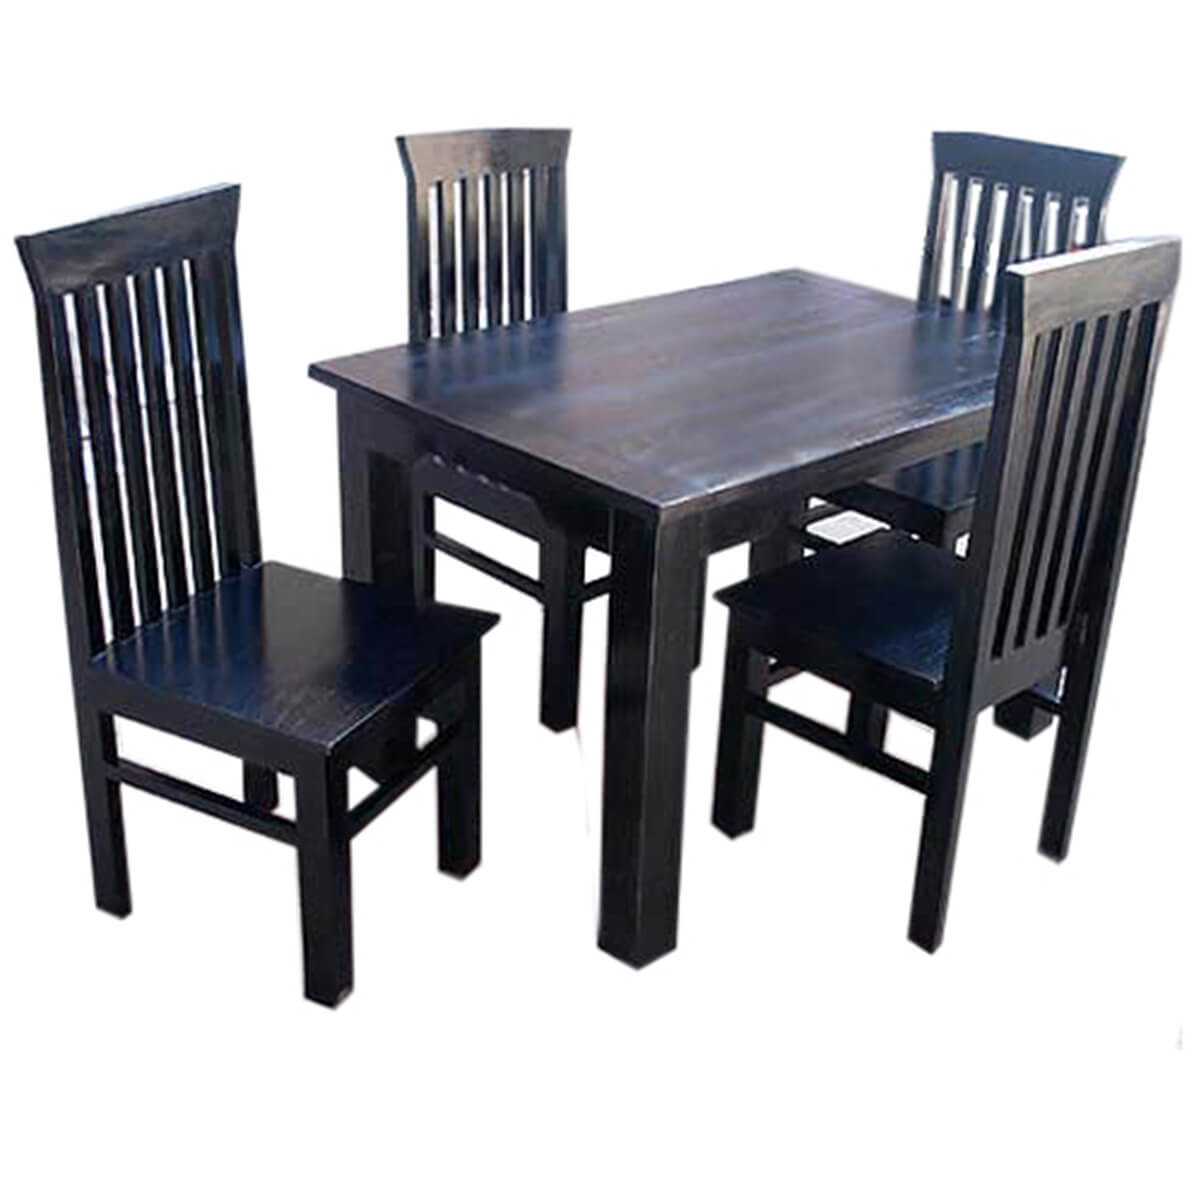 contemporary lincoln kitchen dining room table chairs set. Black Bedroom Furniture Sets. Home Design Ideas